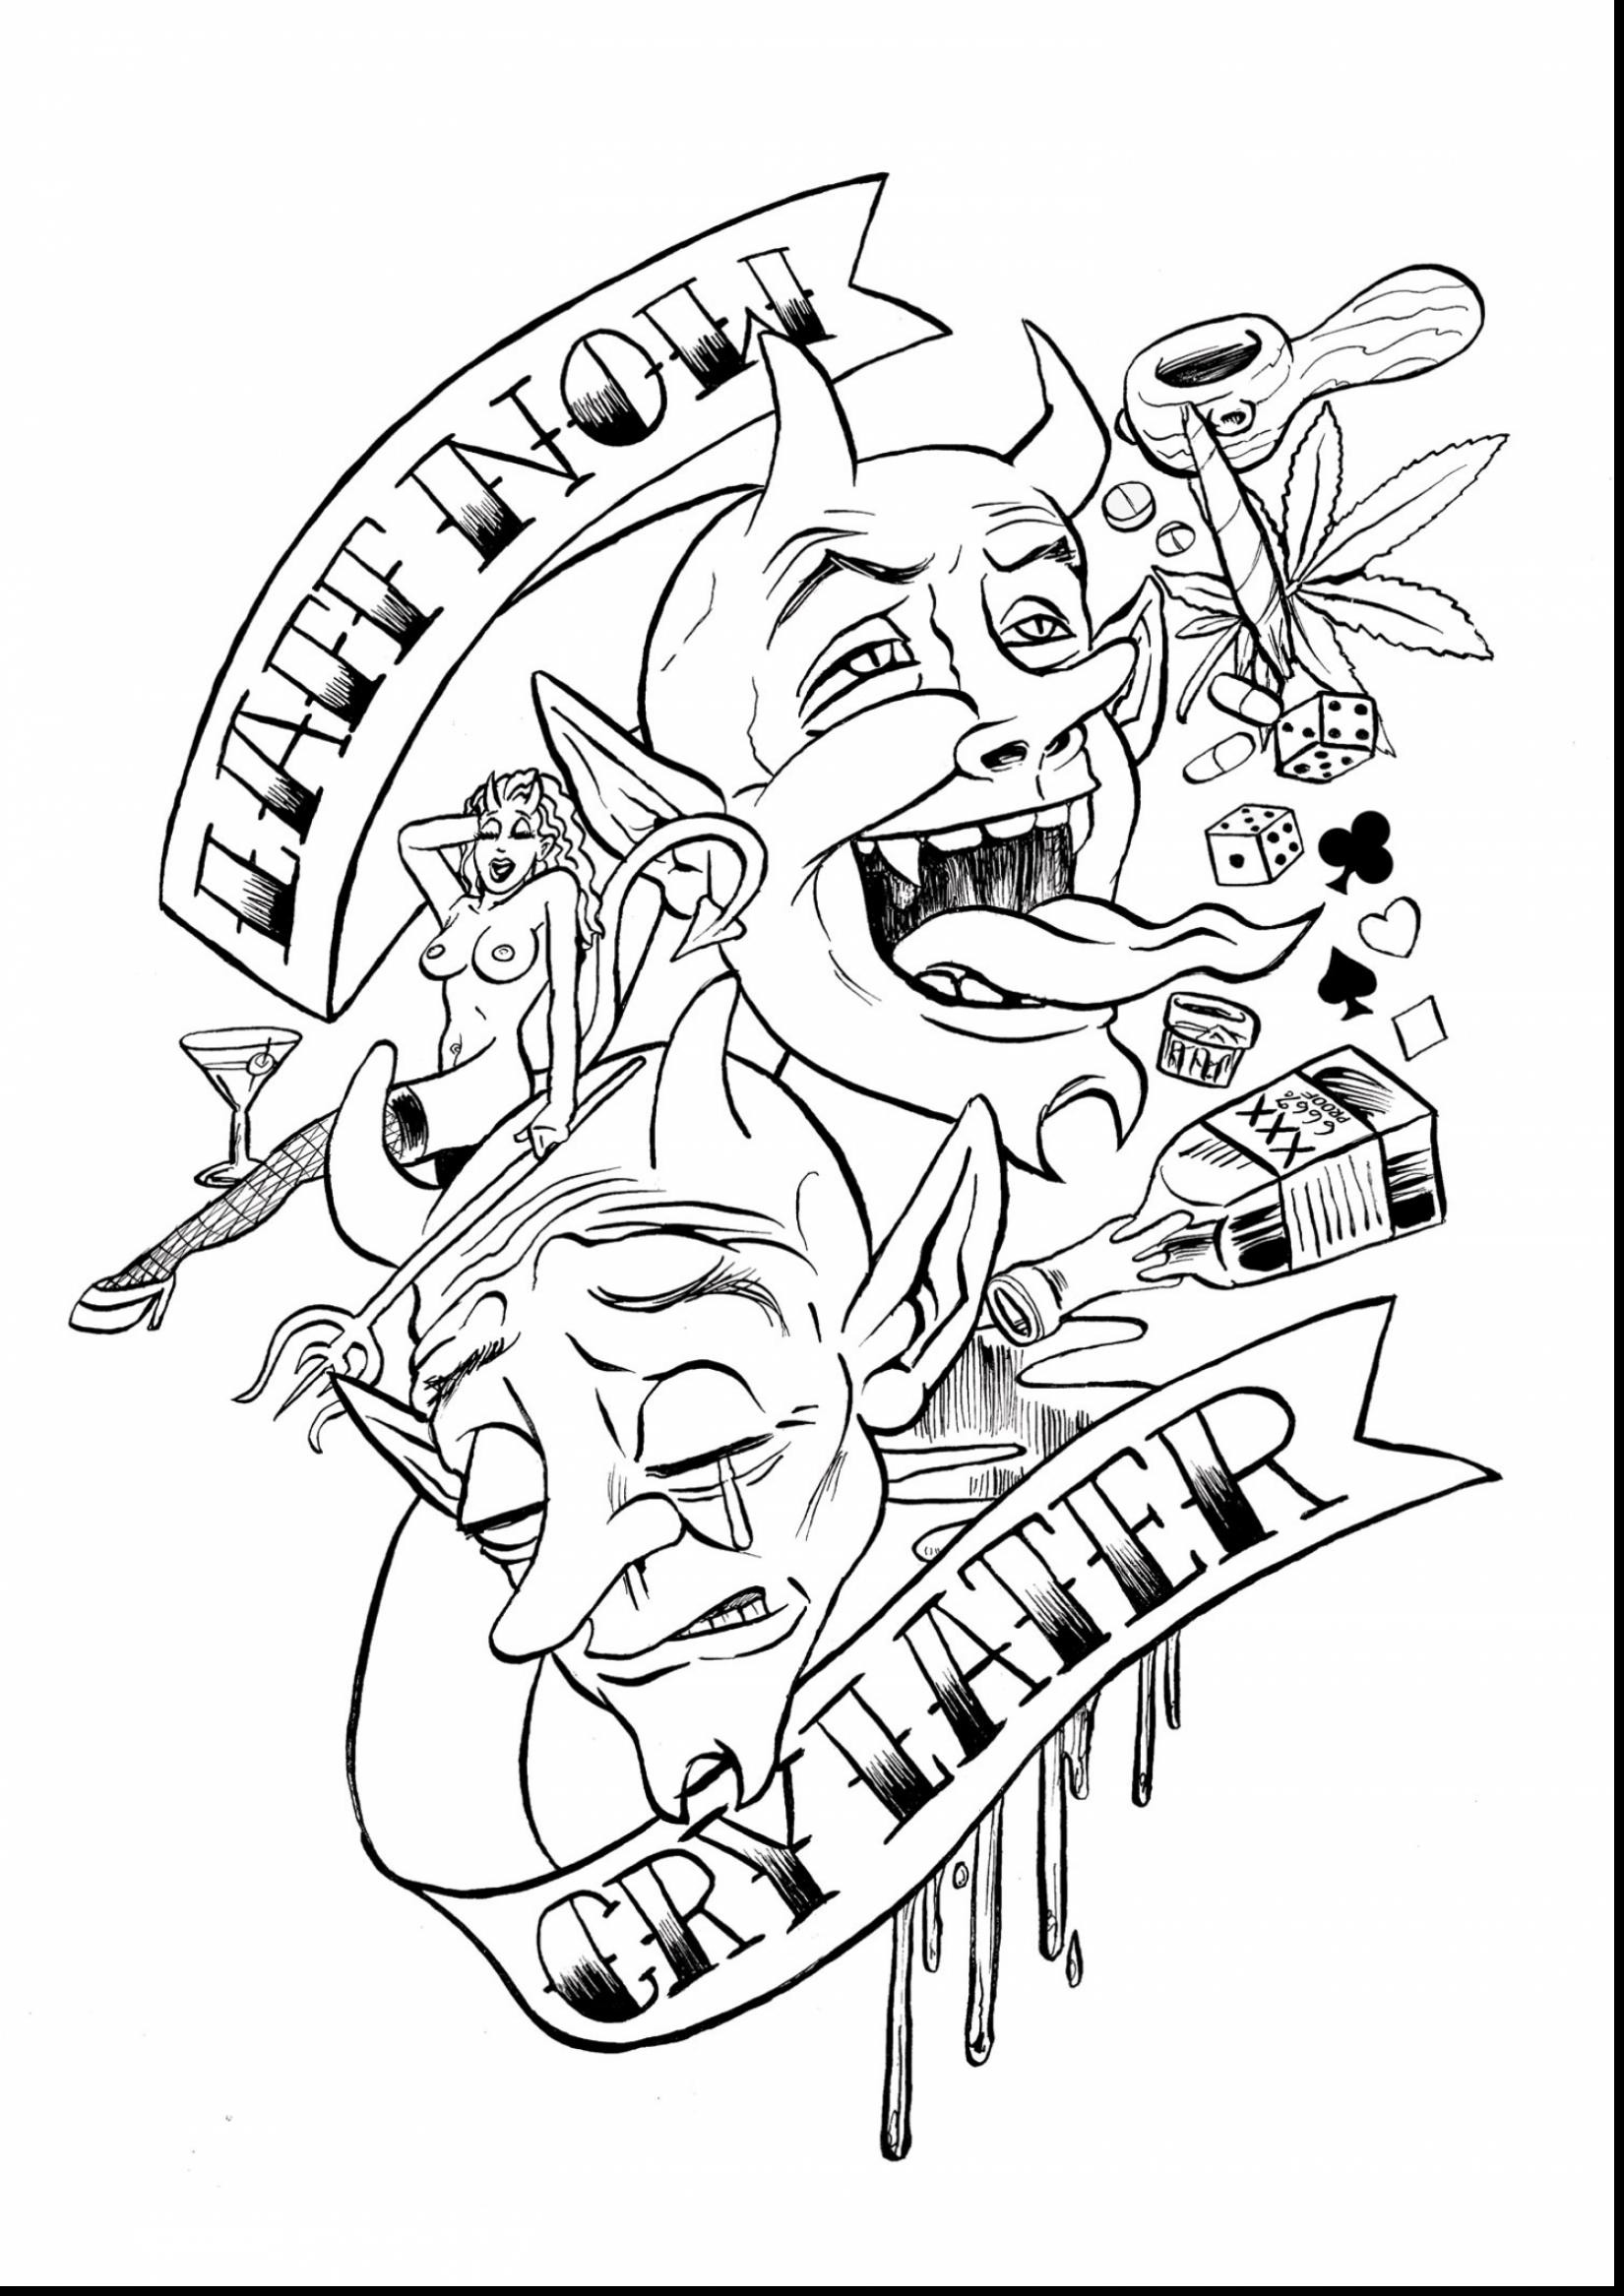 Tattoo Design Coloring Pages At Getdrawings Free Download